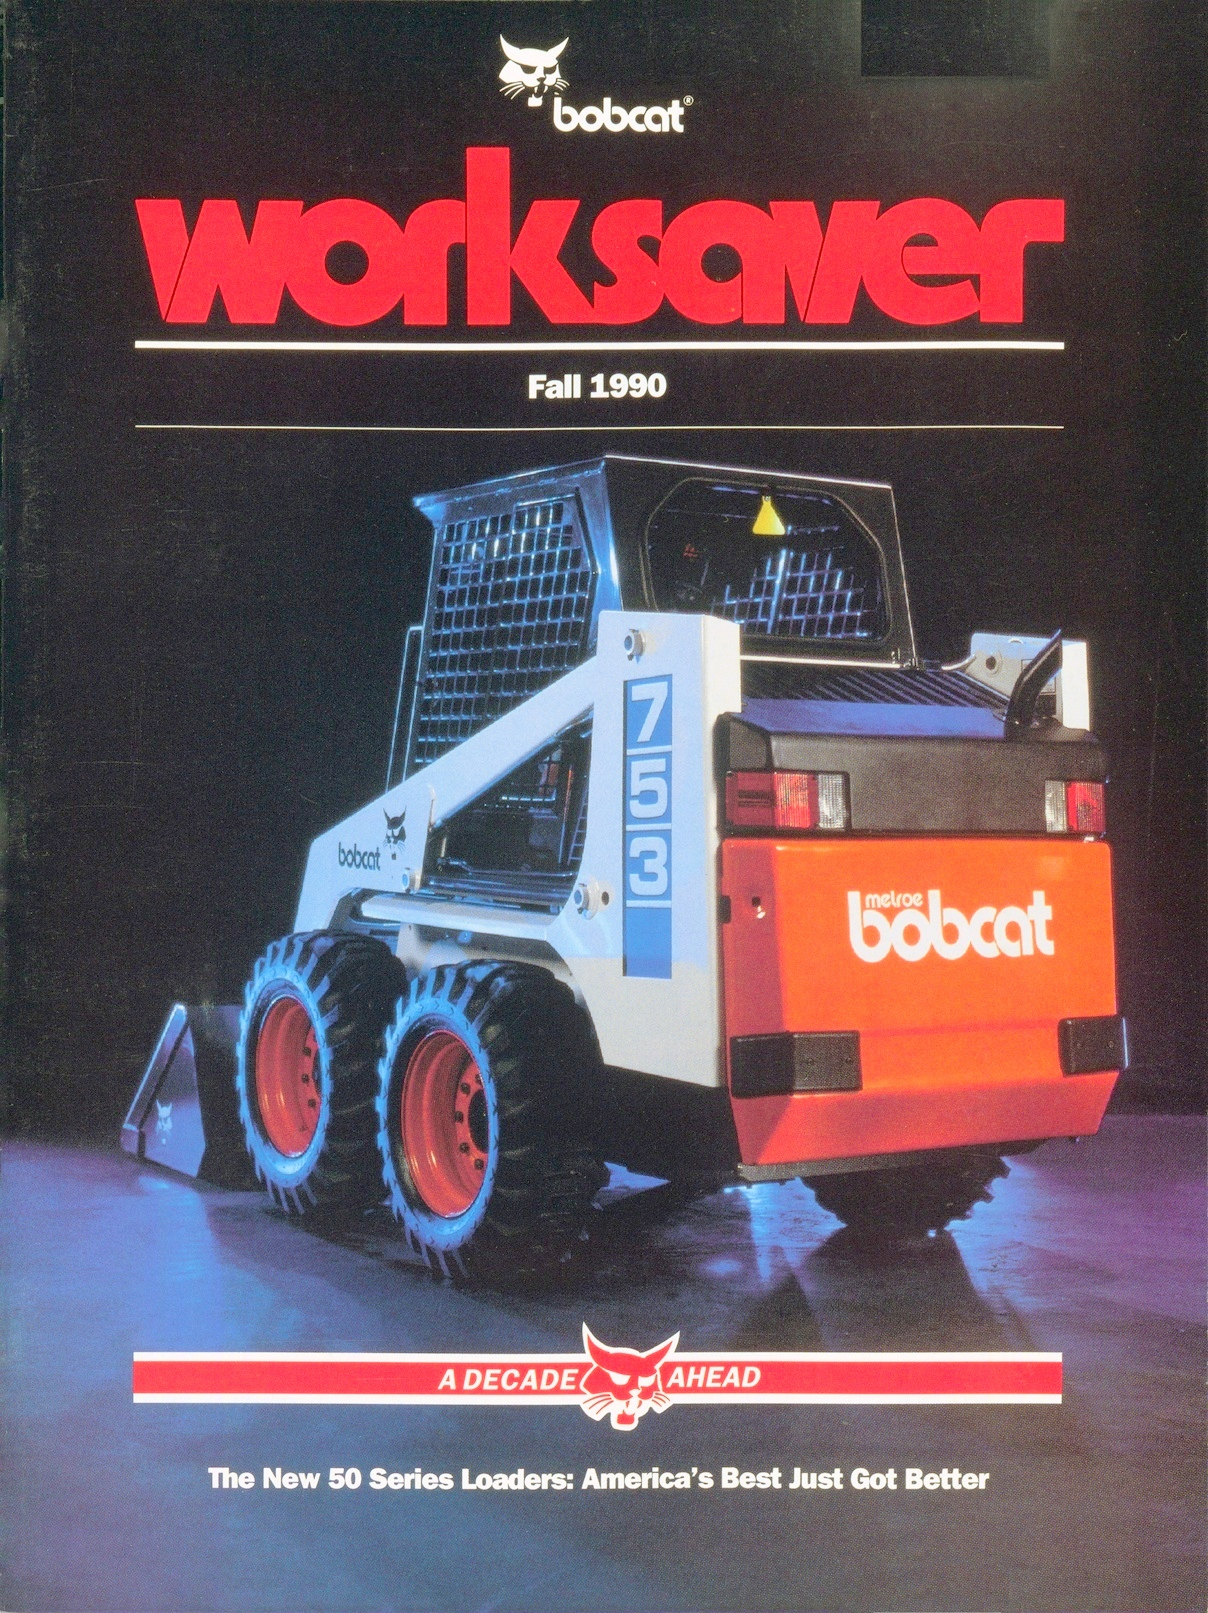 WorkSaver Launches 50 Series, 1990